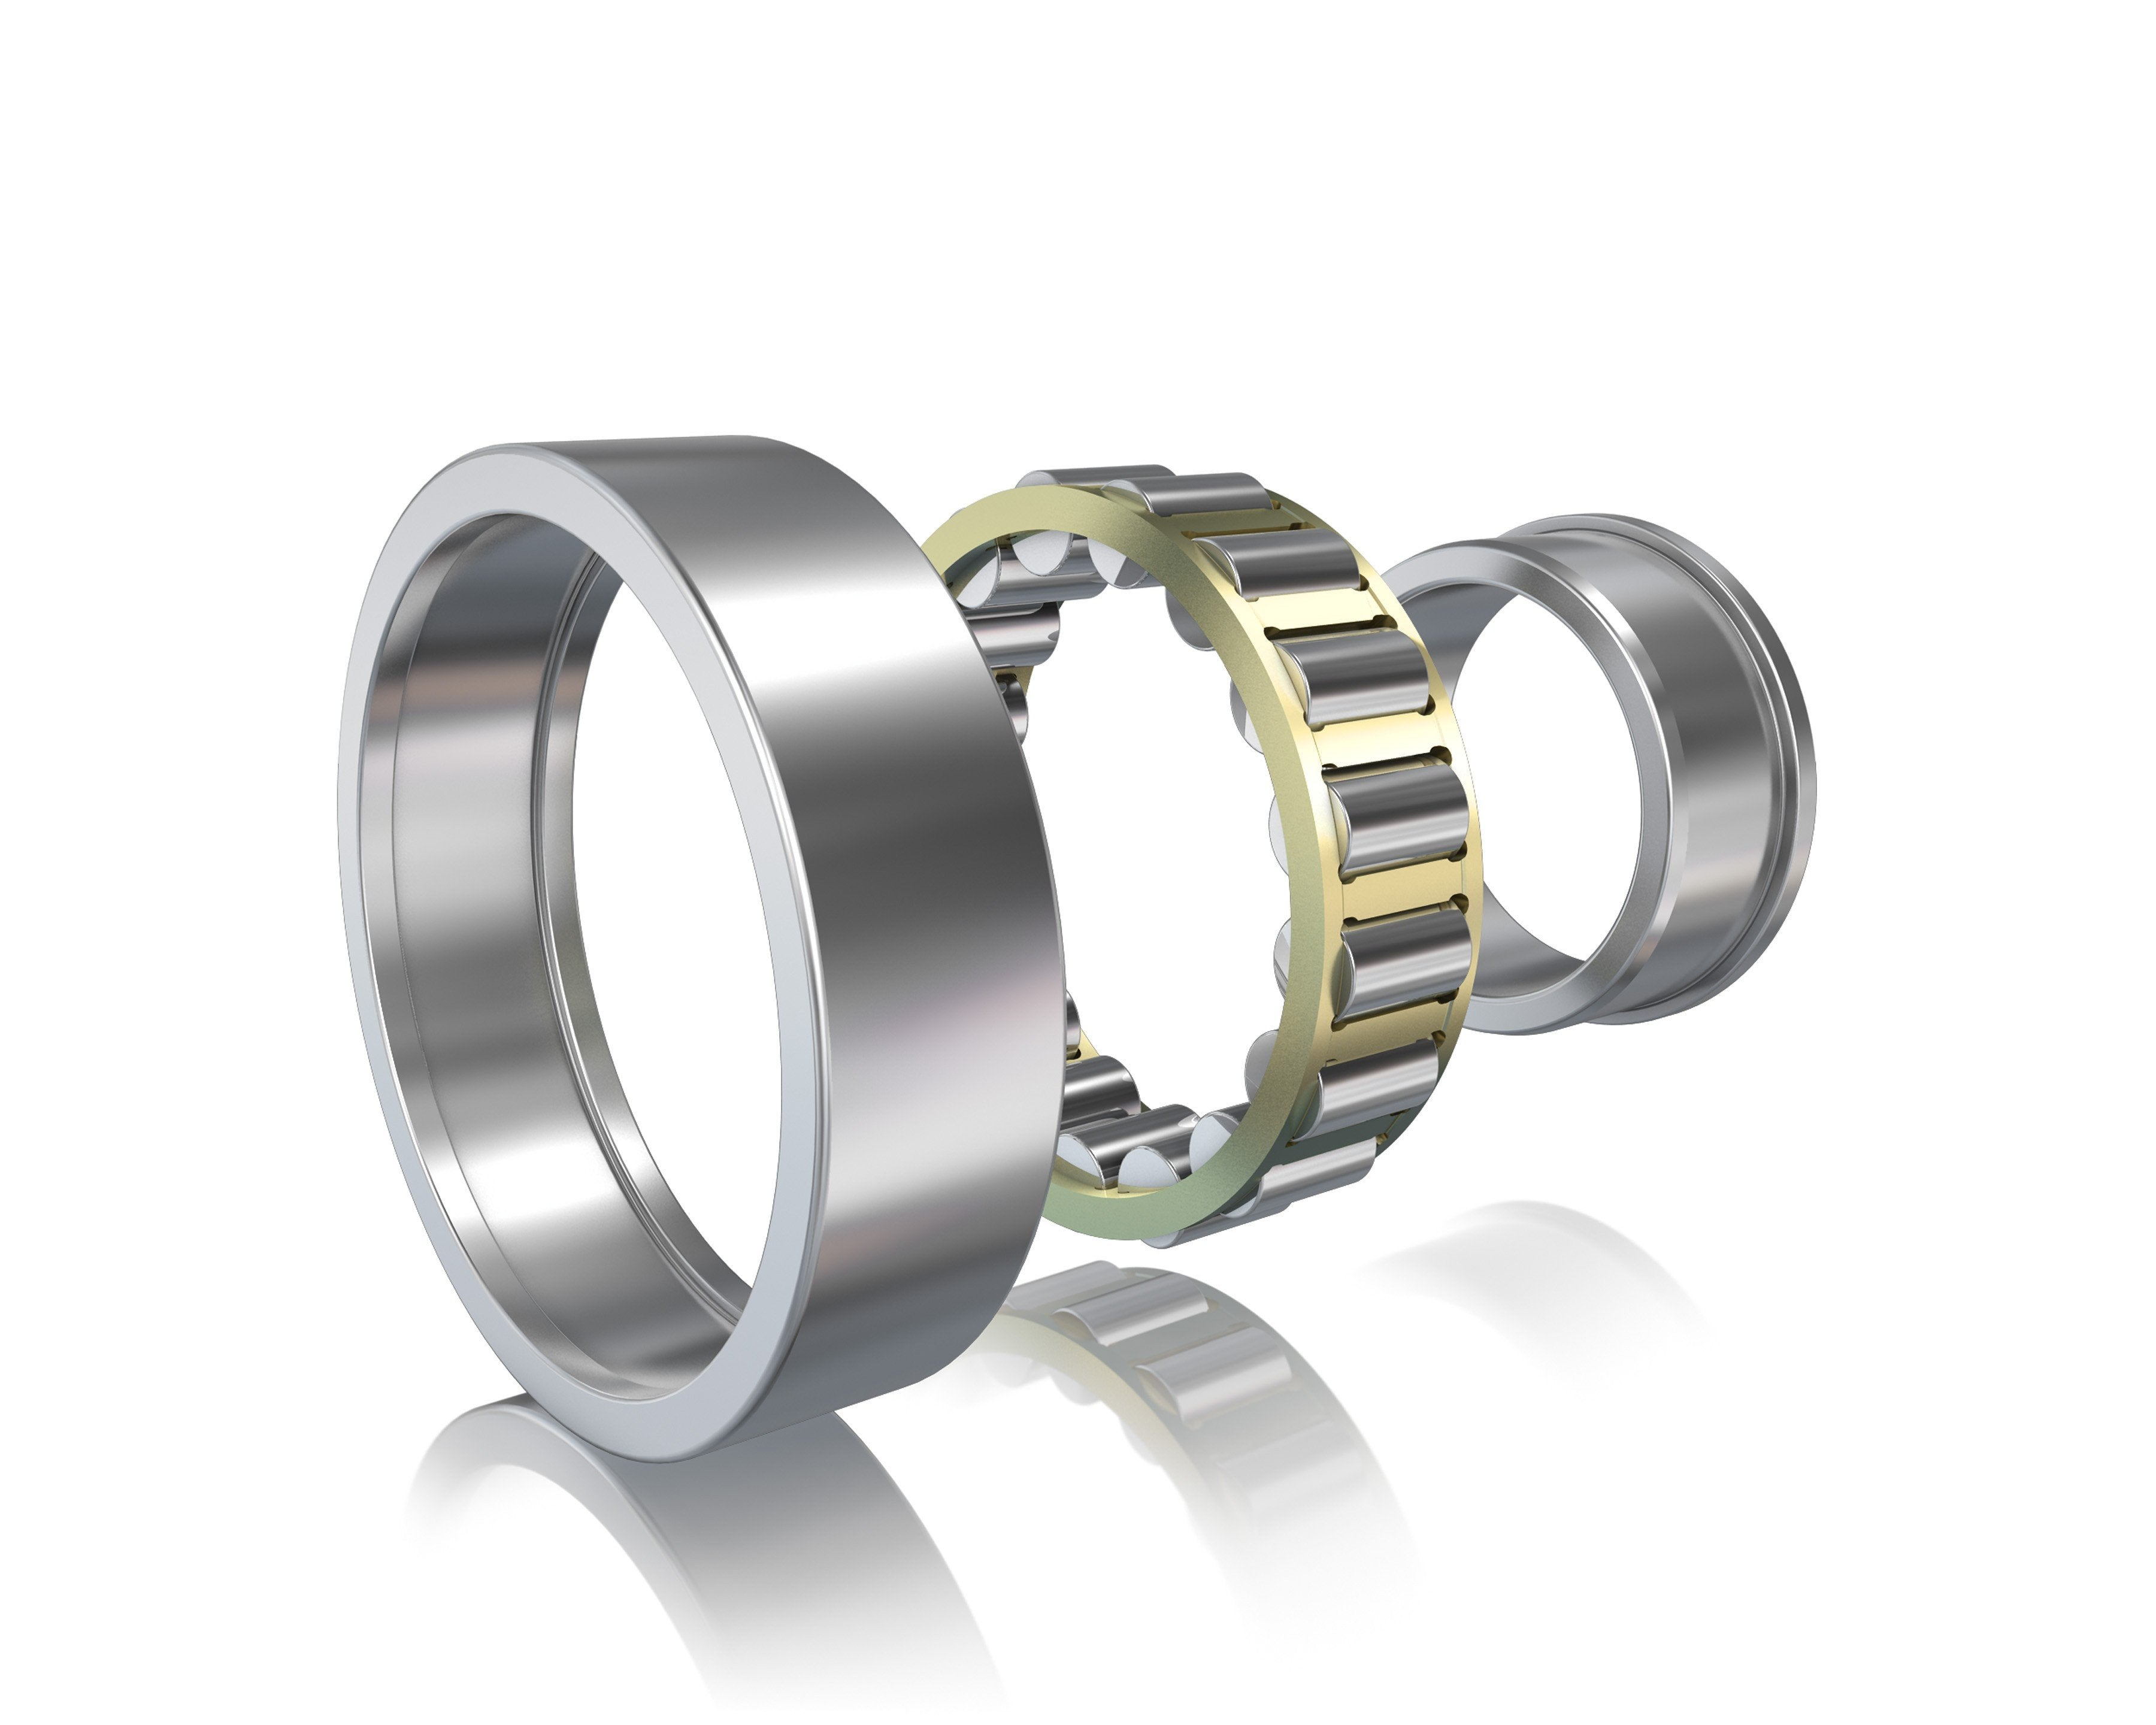 NJ2208-ECP-C3-SKF, Bearings, Cylindrical roller bearings